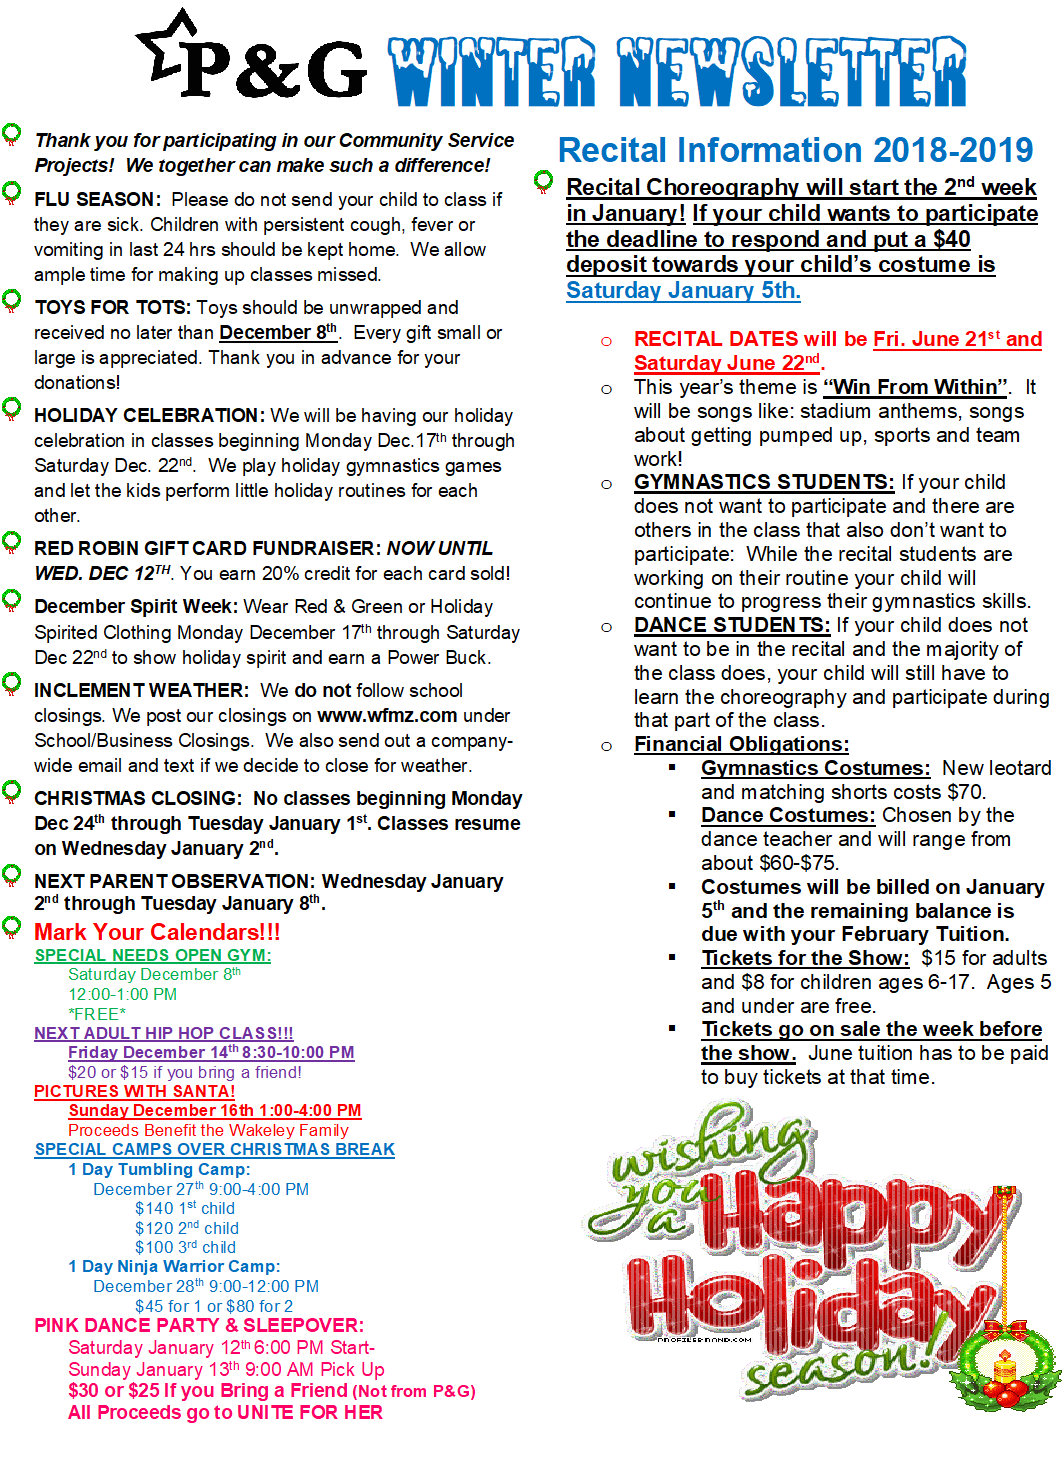 image-767797-winternewsletter.w640.png